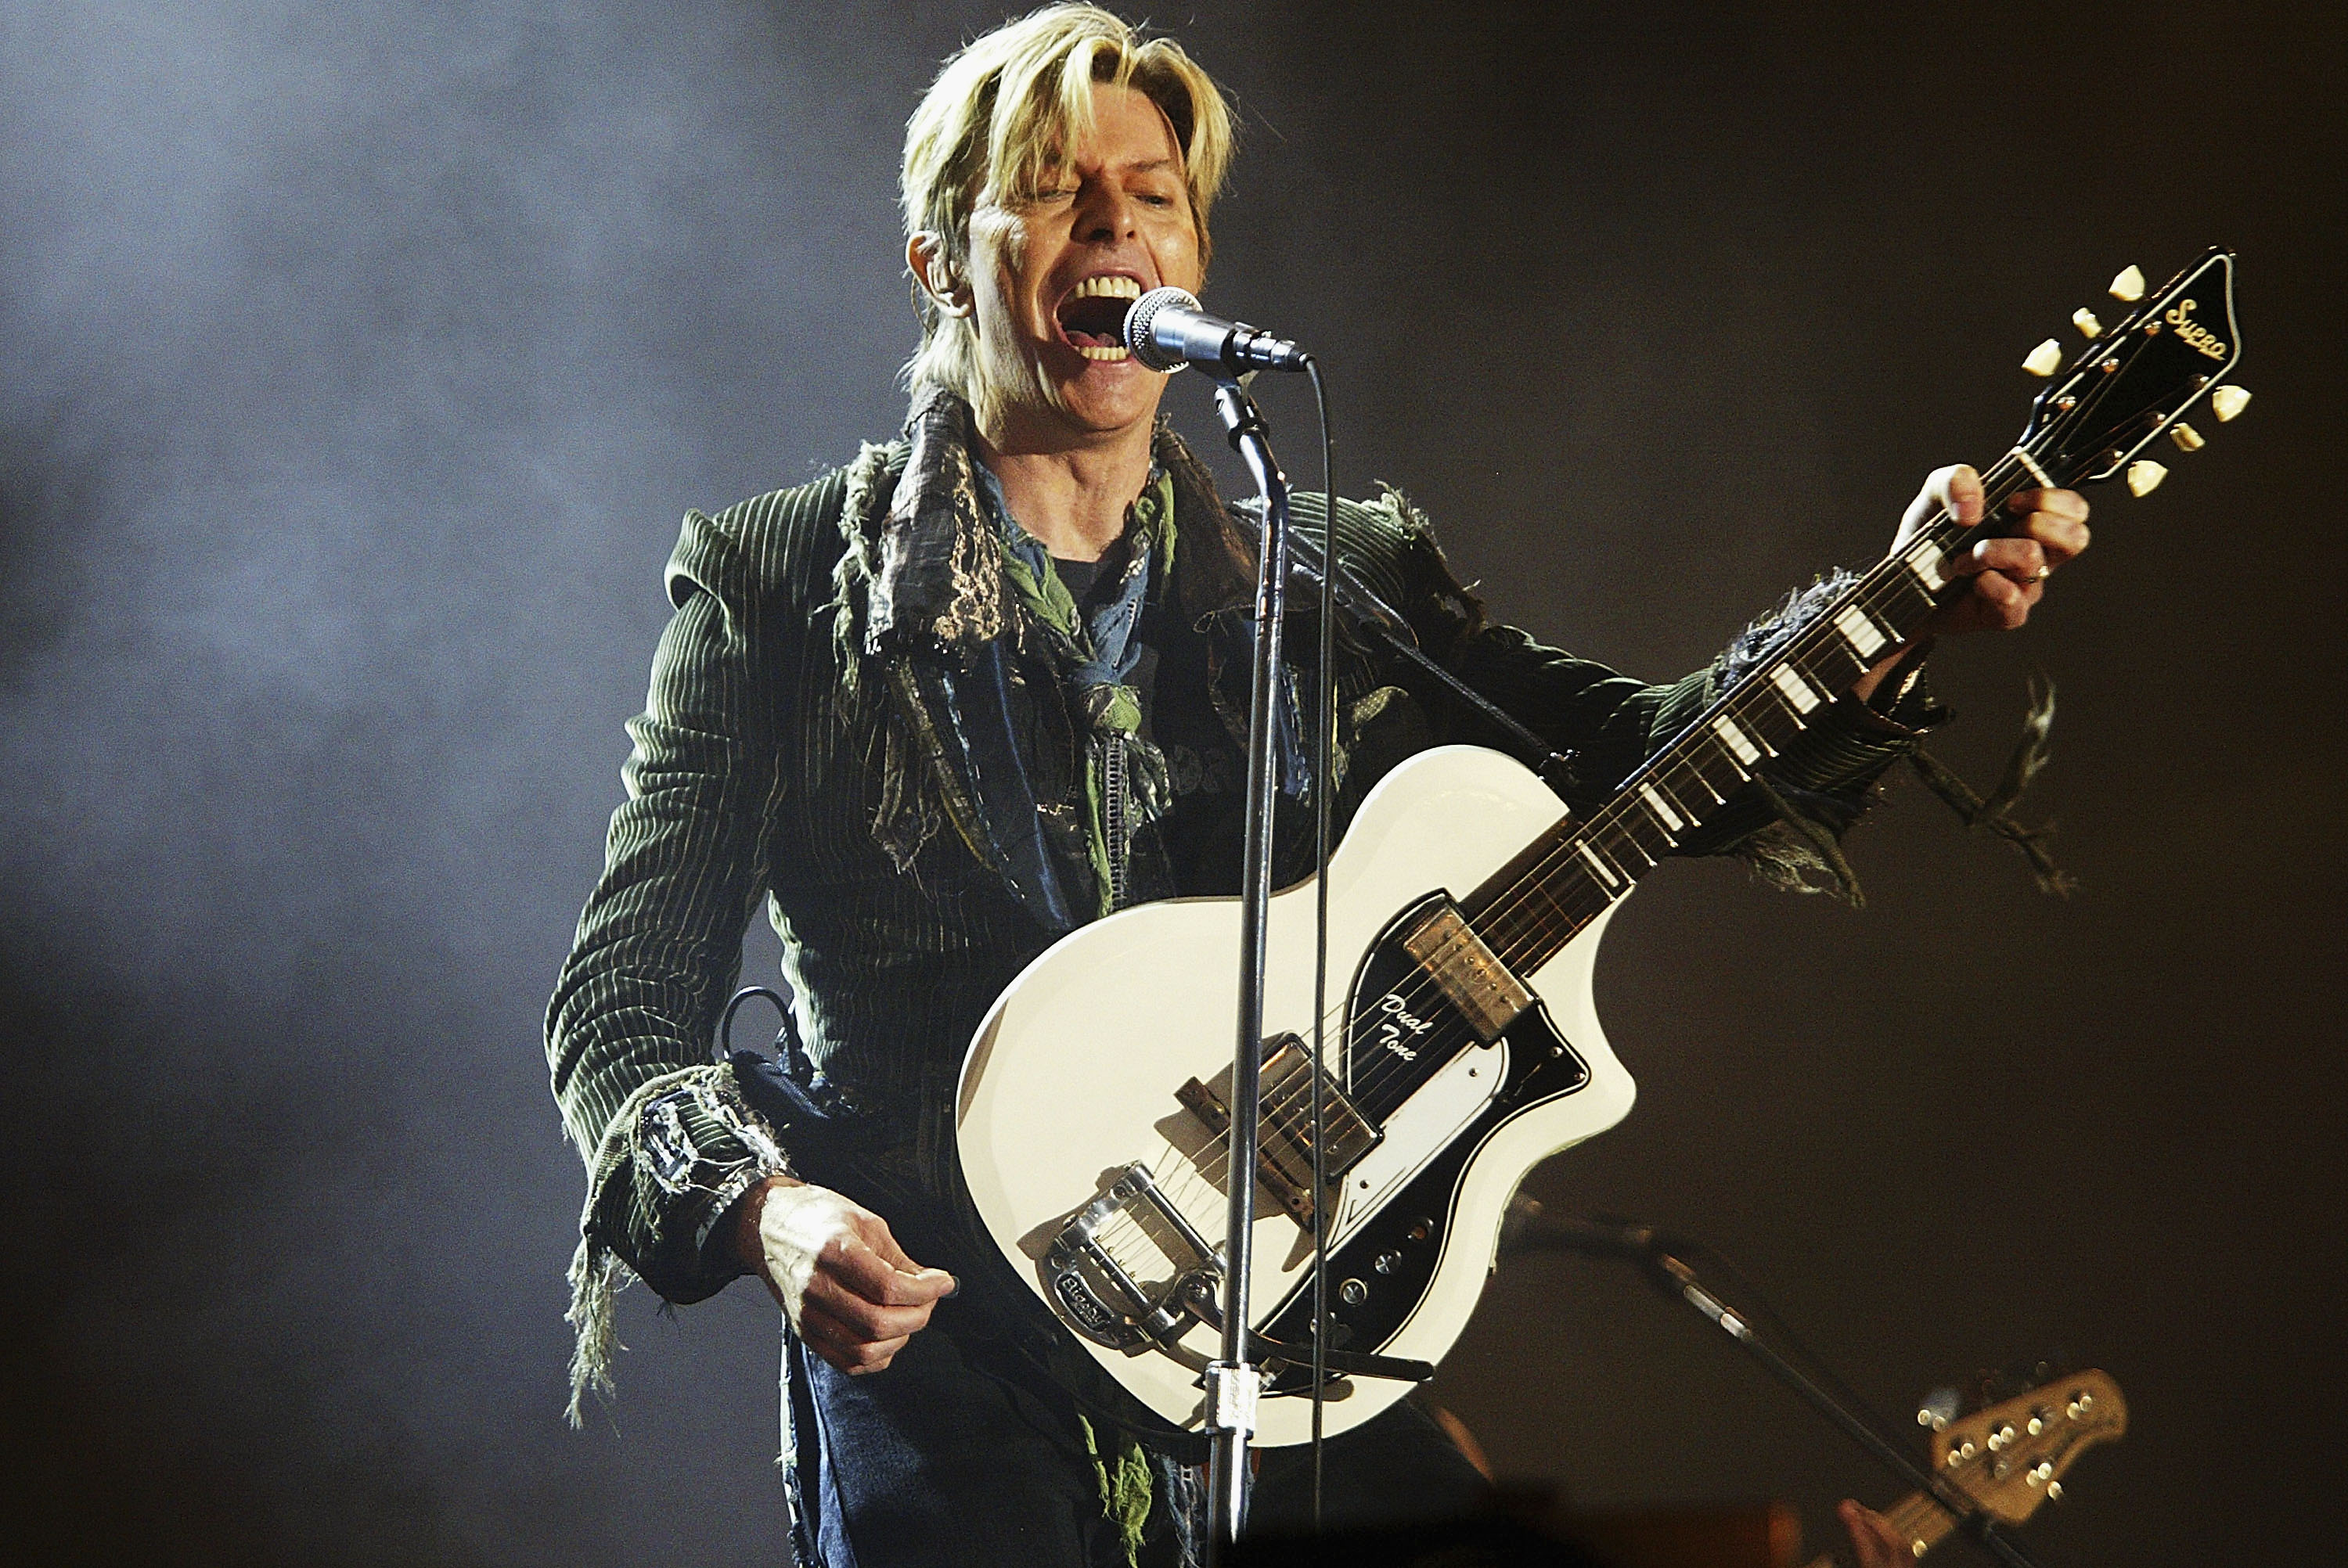 David Bowie performs on stage on the third and final day of  The Nokia Isle of Wight Festival 2004 , on June 13, 2004 in Newport, UK.